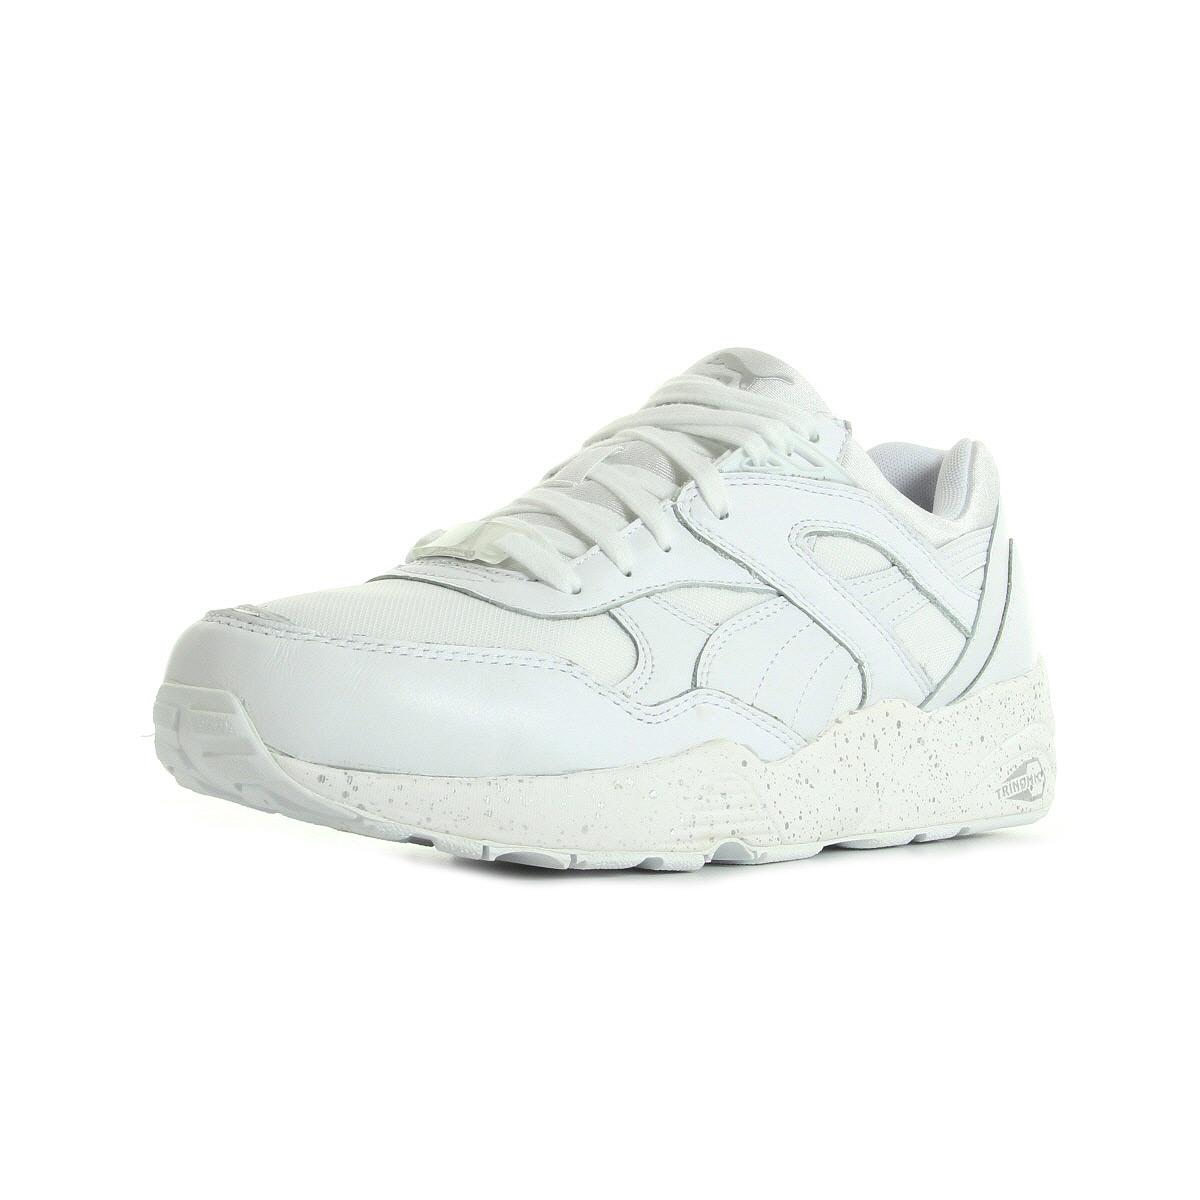 grand choix de 6b1a0 8f268 Puma R698 Speckle 36087901, Baskets mode